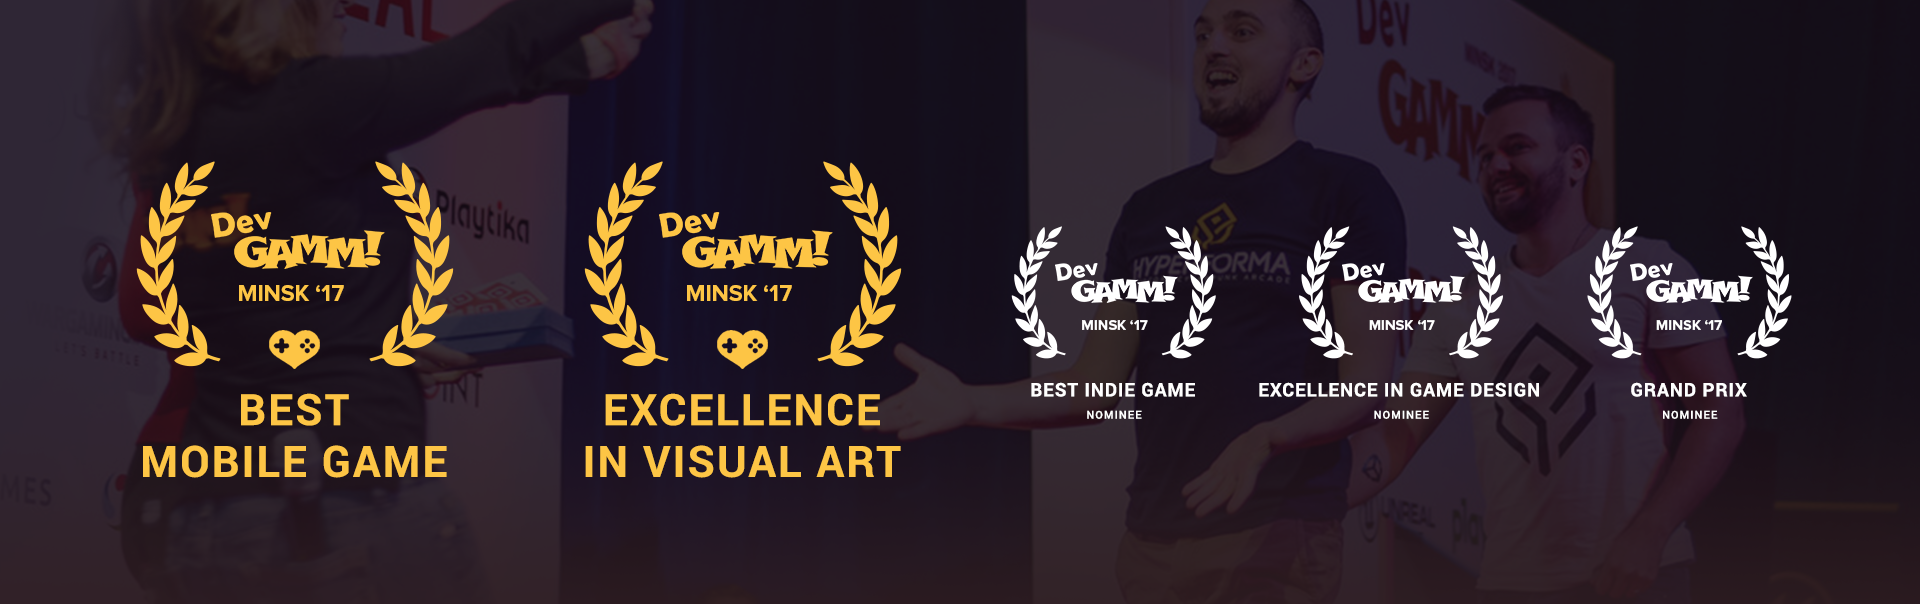 DevGAMM Minsk 2017_Awards